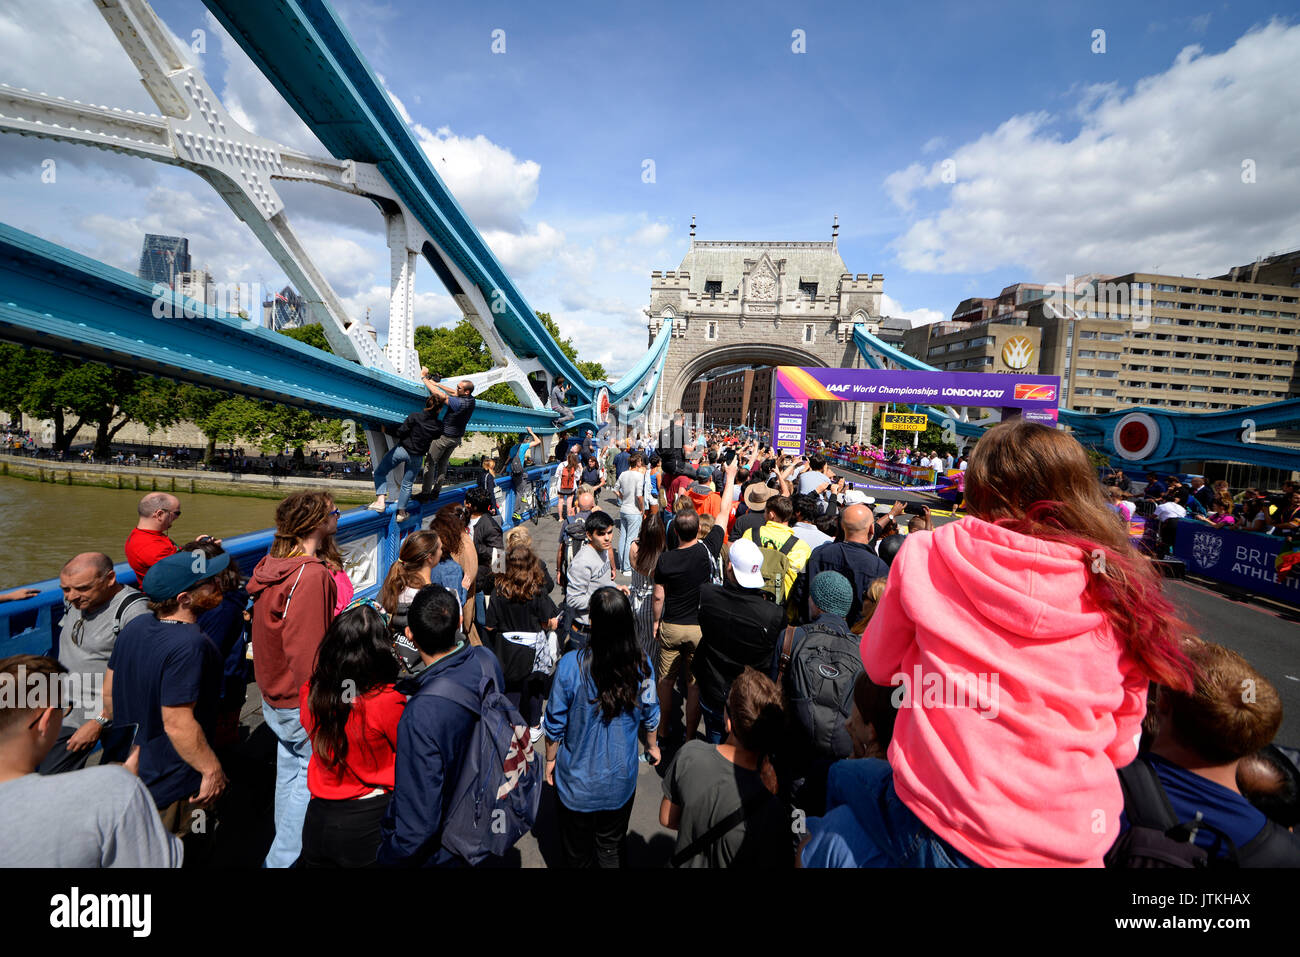 Crowds pack Tower Bridge for the finish of the World Athletics Championships Marathon, London. Space for copy - Stock Image